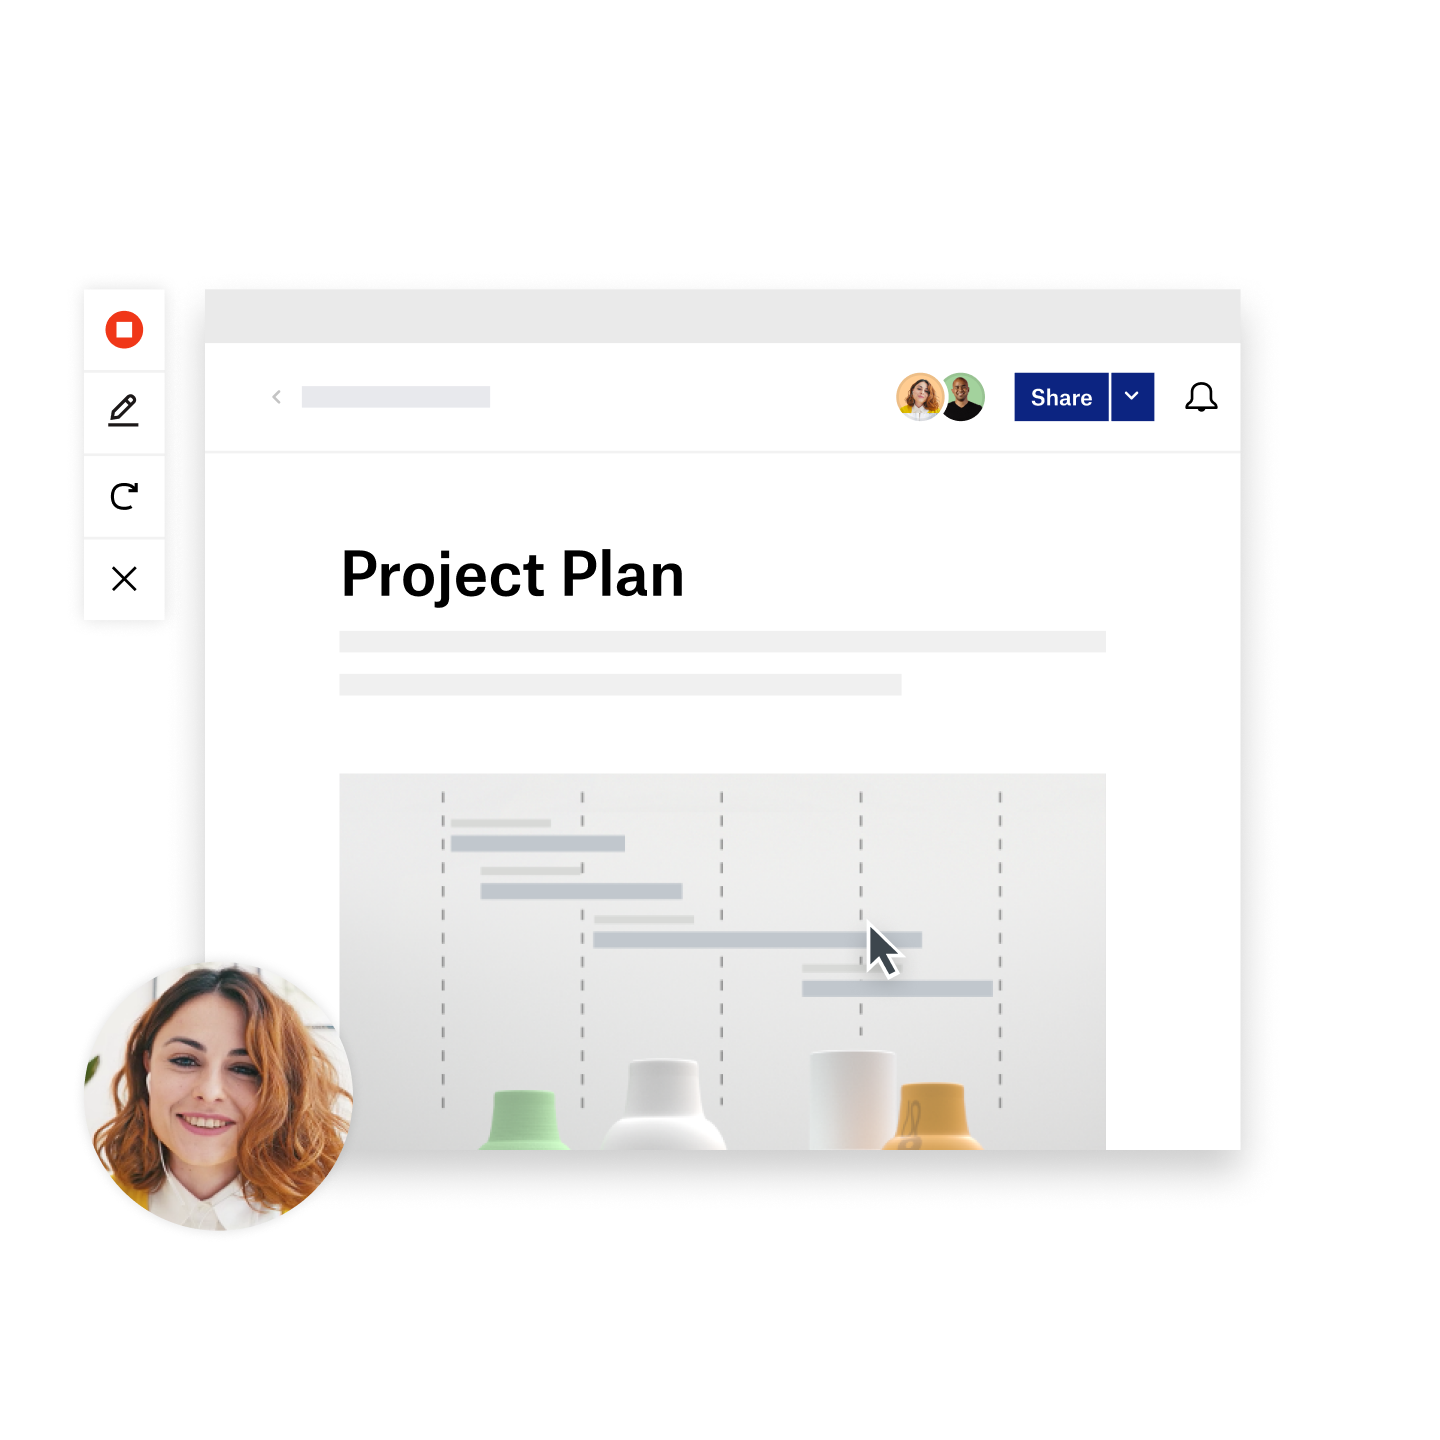 Someone hovers cursor over Project Plan, with video of presenter in corner and toolbar on side in Dropbox Capture